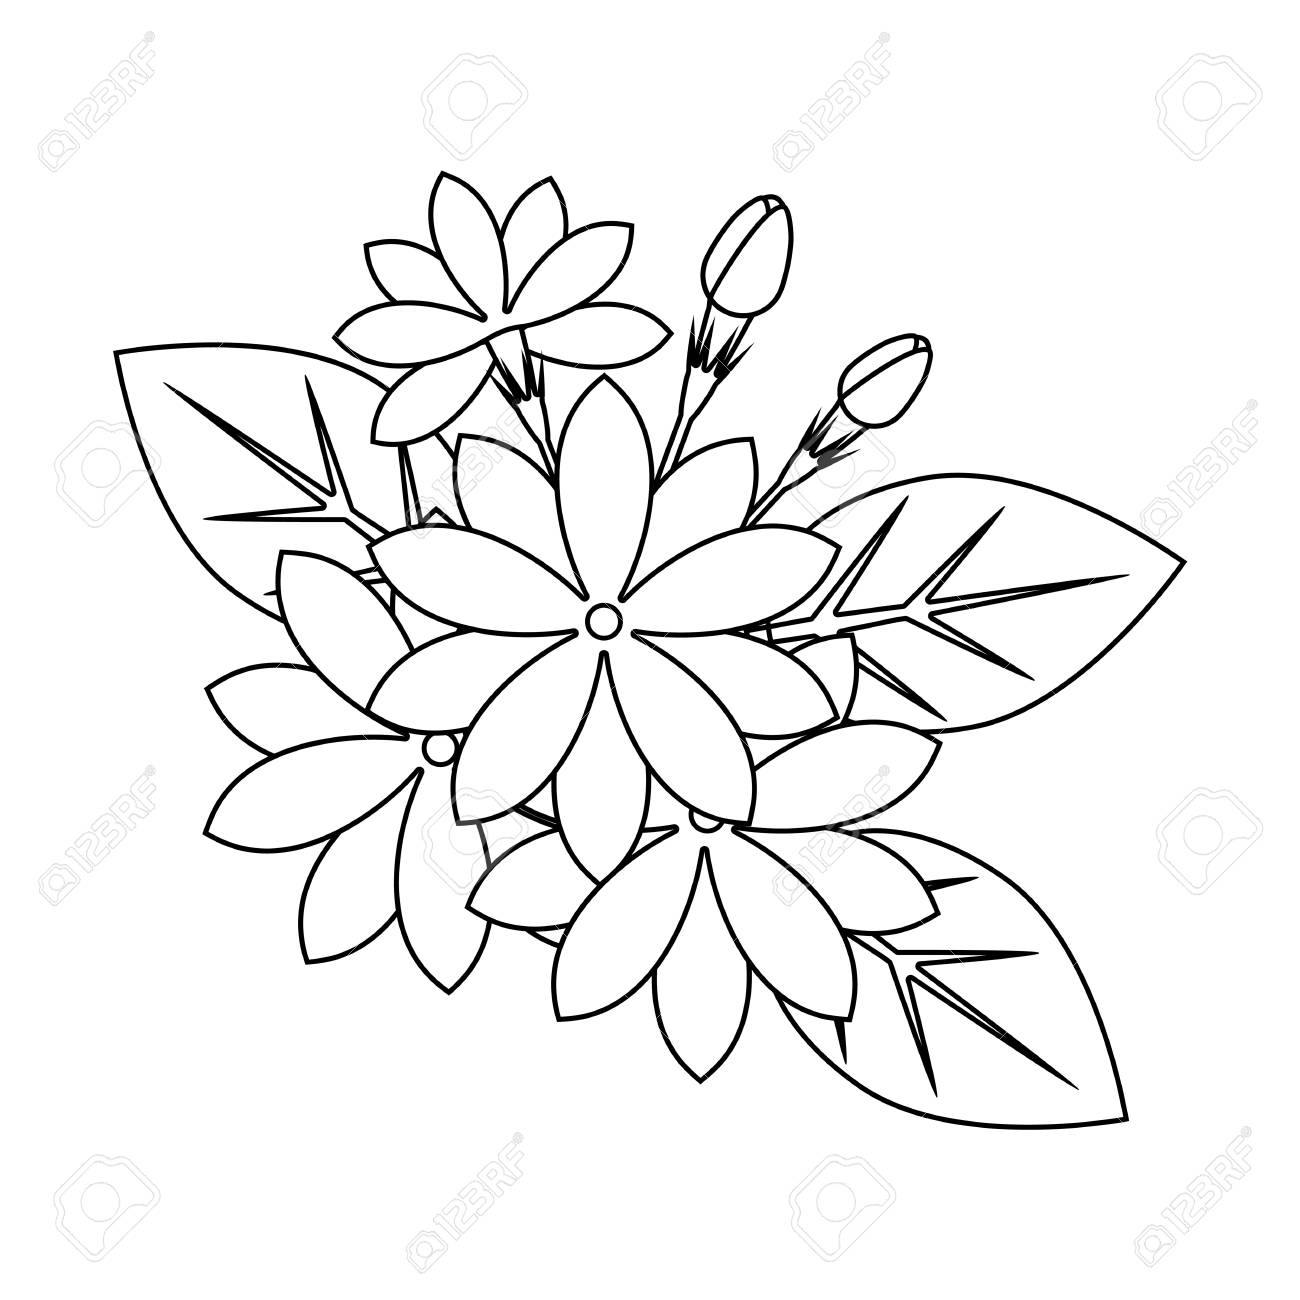 - Jasmine Flowers Outline For Coloring Book, Beautiful Floral Vector